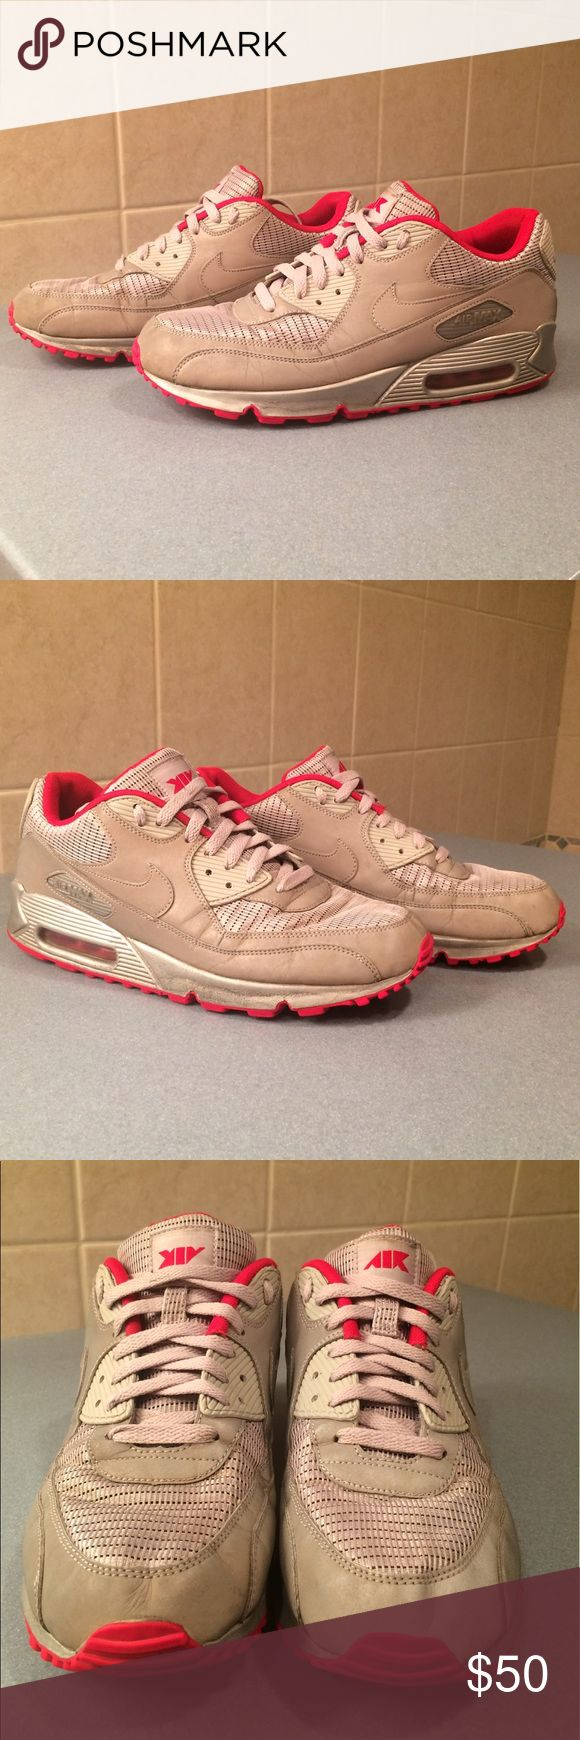 Nike Air Max 90 Air Attack Pack Nike Air Max 90, Air Attack Pack edition. Silver reflective sneaker with red bottoms. They are about 7.5/10. The pictures show the ware. Nike Shoes Sneakers